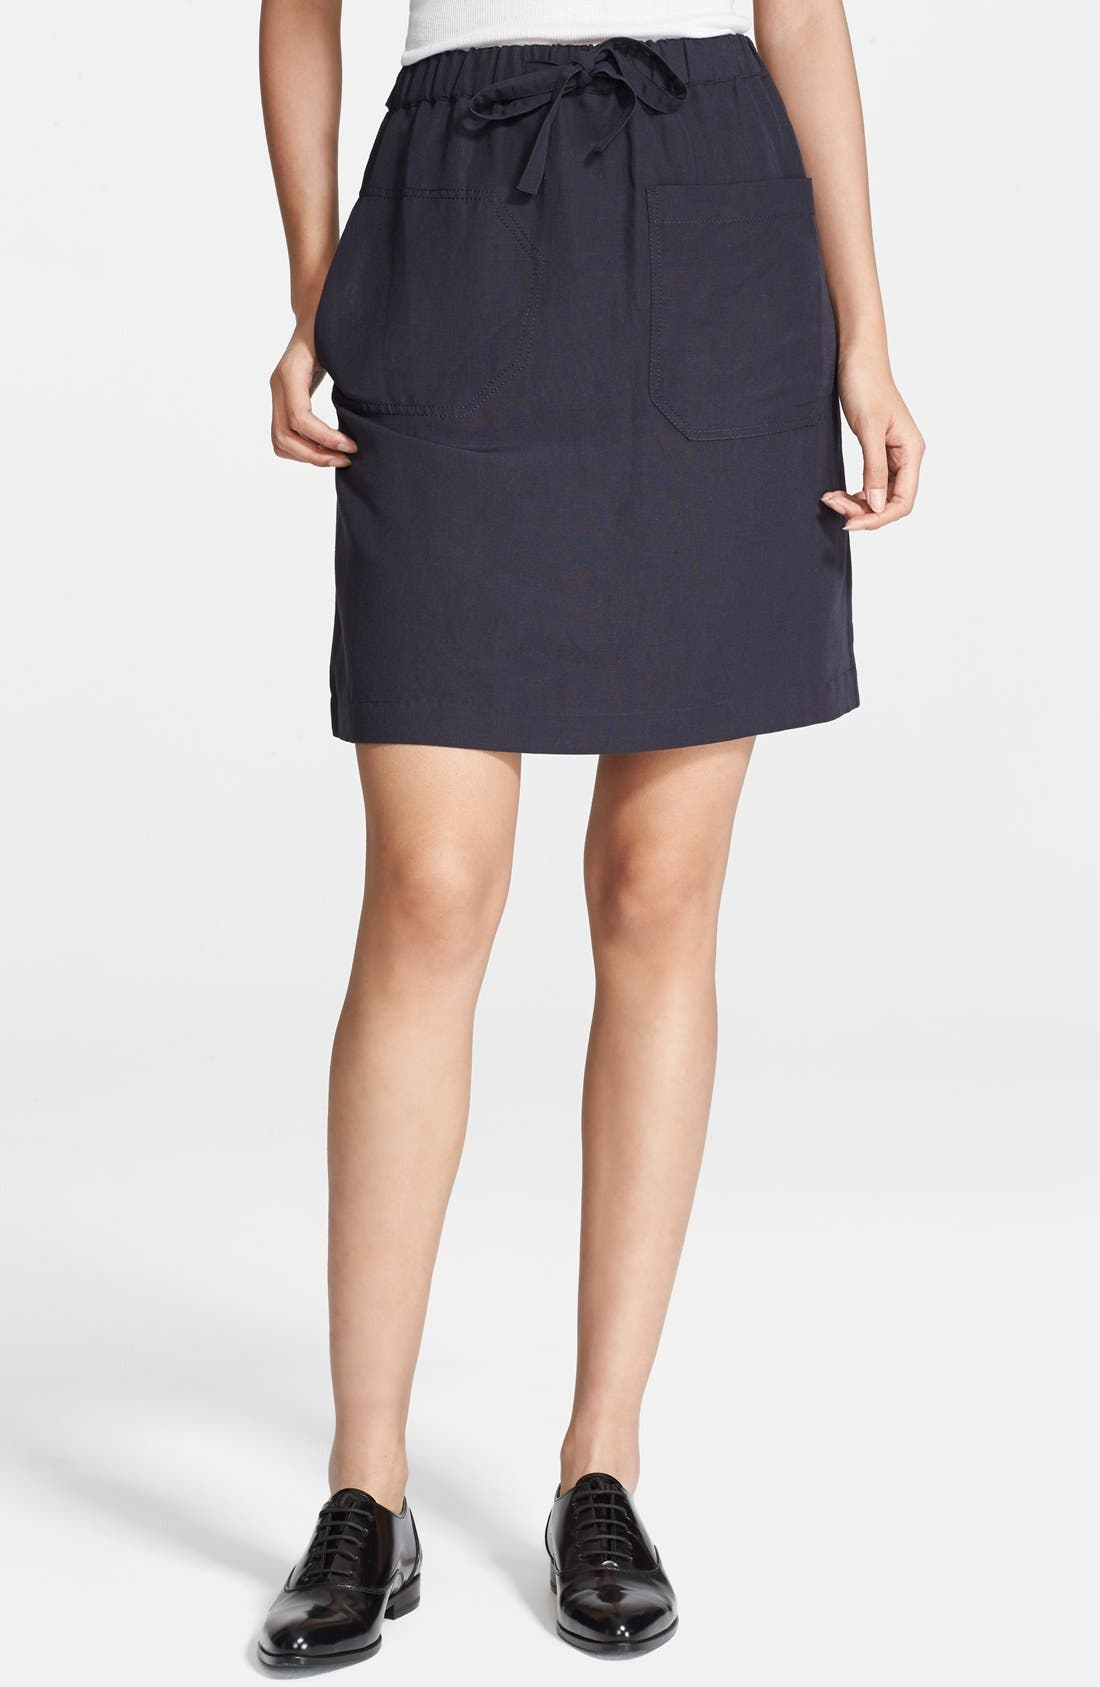 Alternate Image 1 Selected - A.P.C. Drawstring Linen Blend Skirt